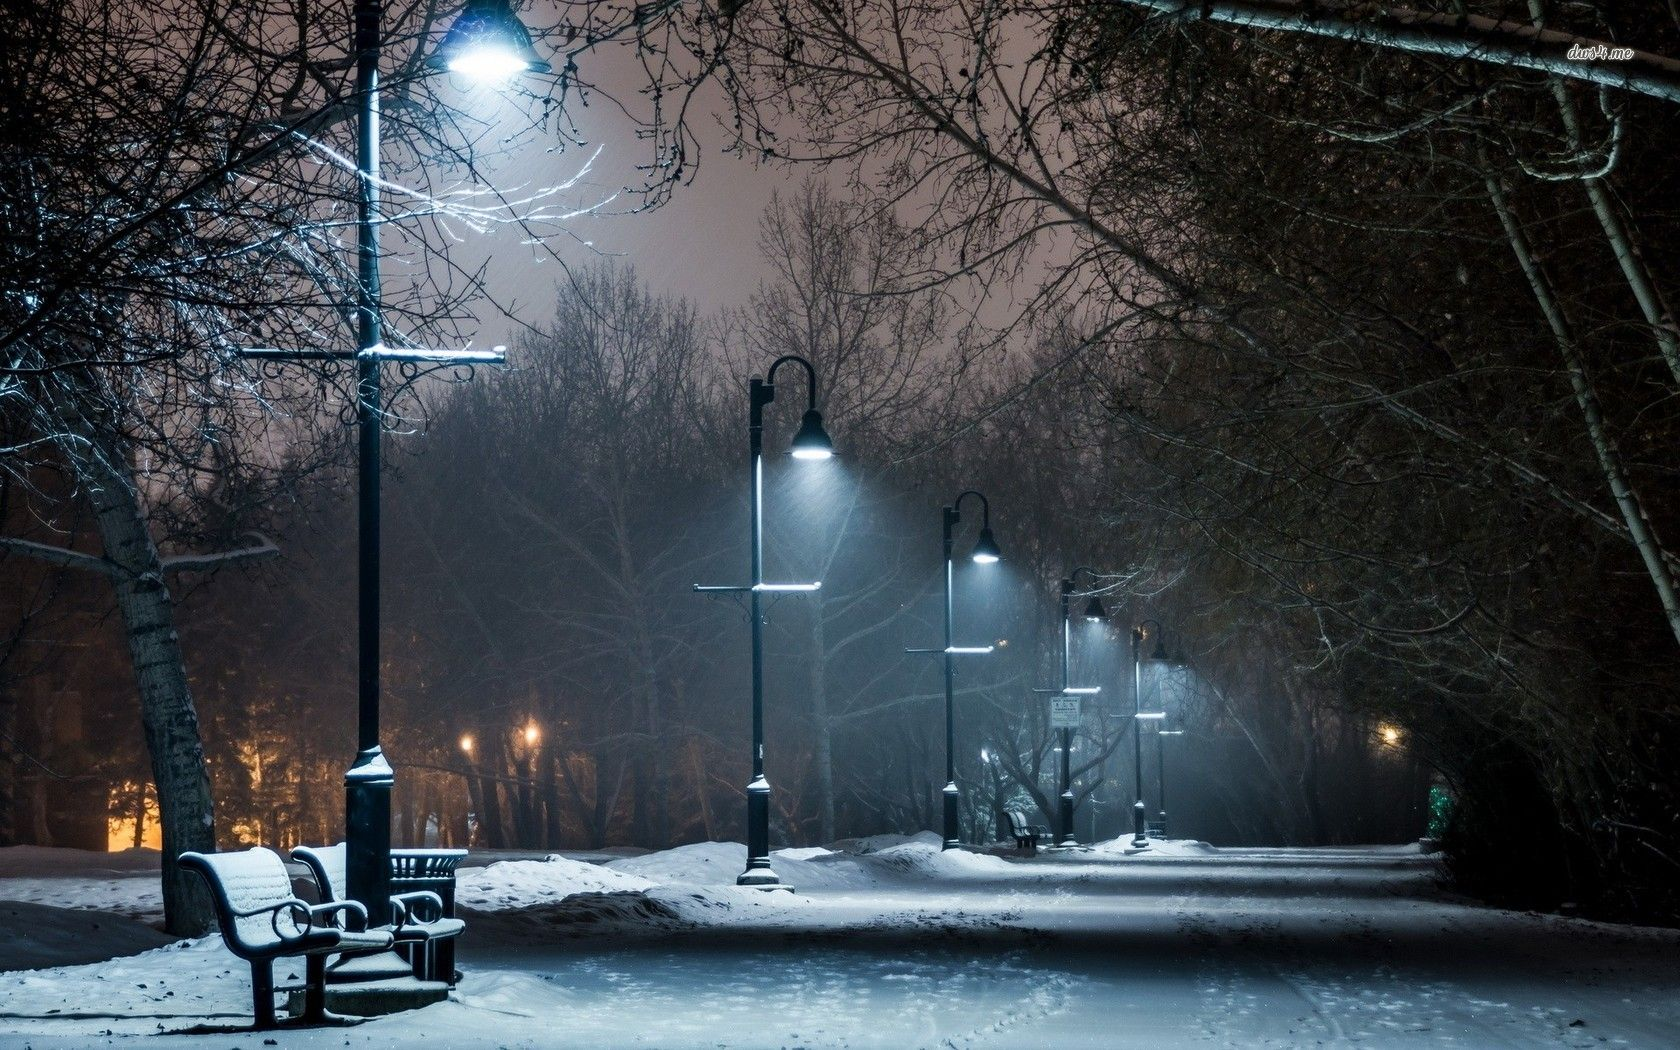 lamppost in the snowy park wallpaper | Photo box | Pinterest ... for Lamp Post At Night Snow  56mzq